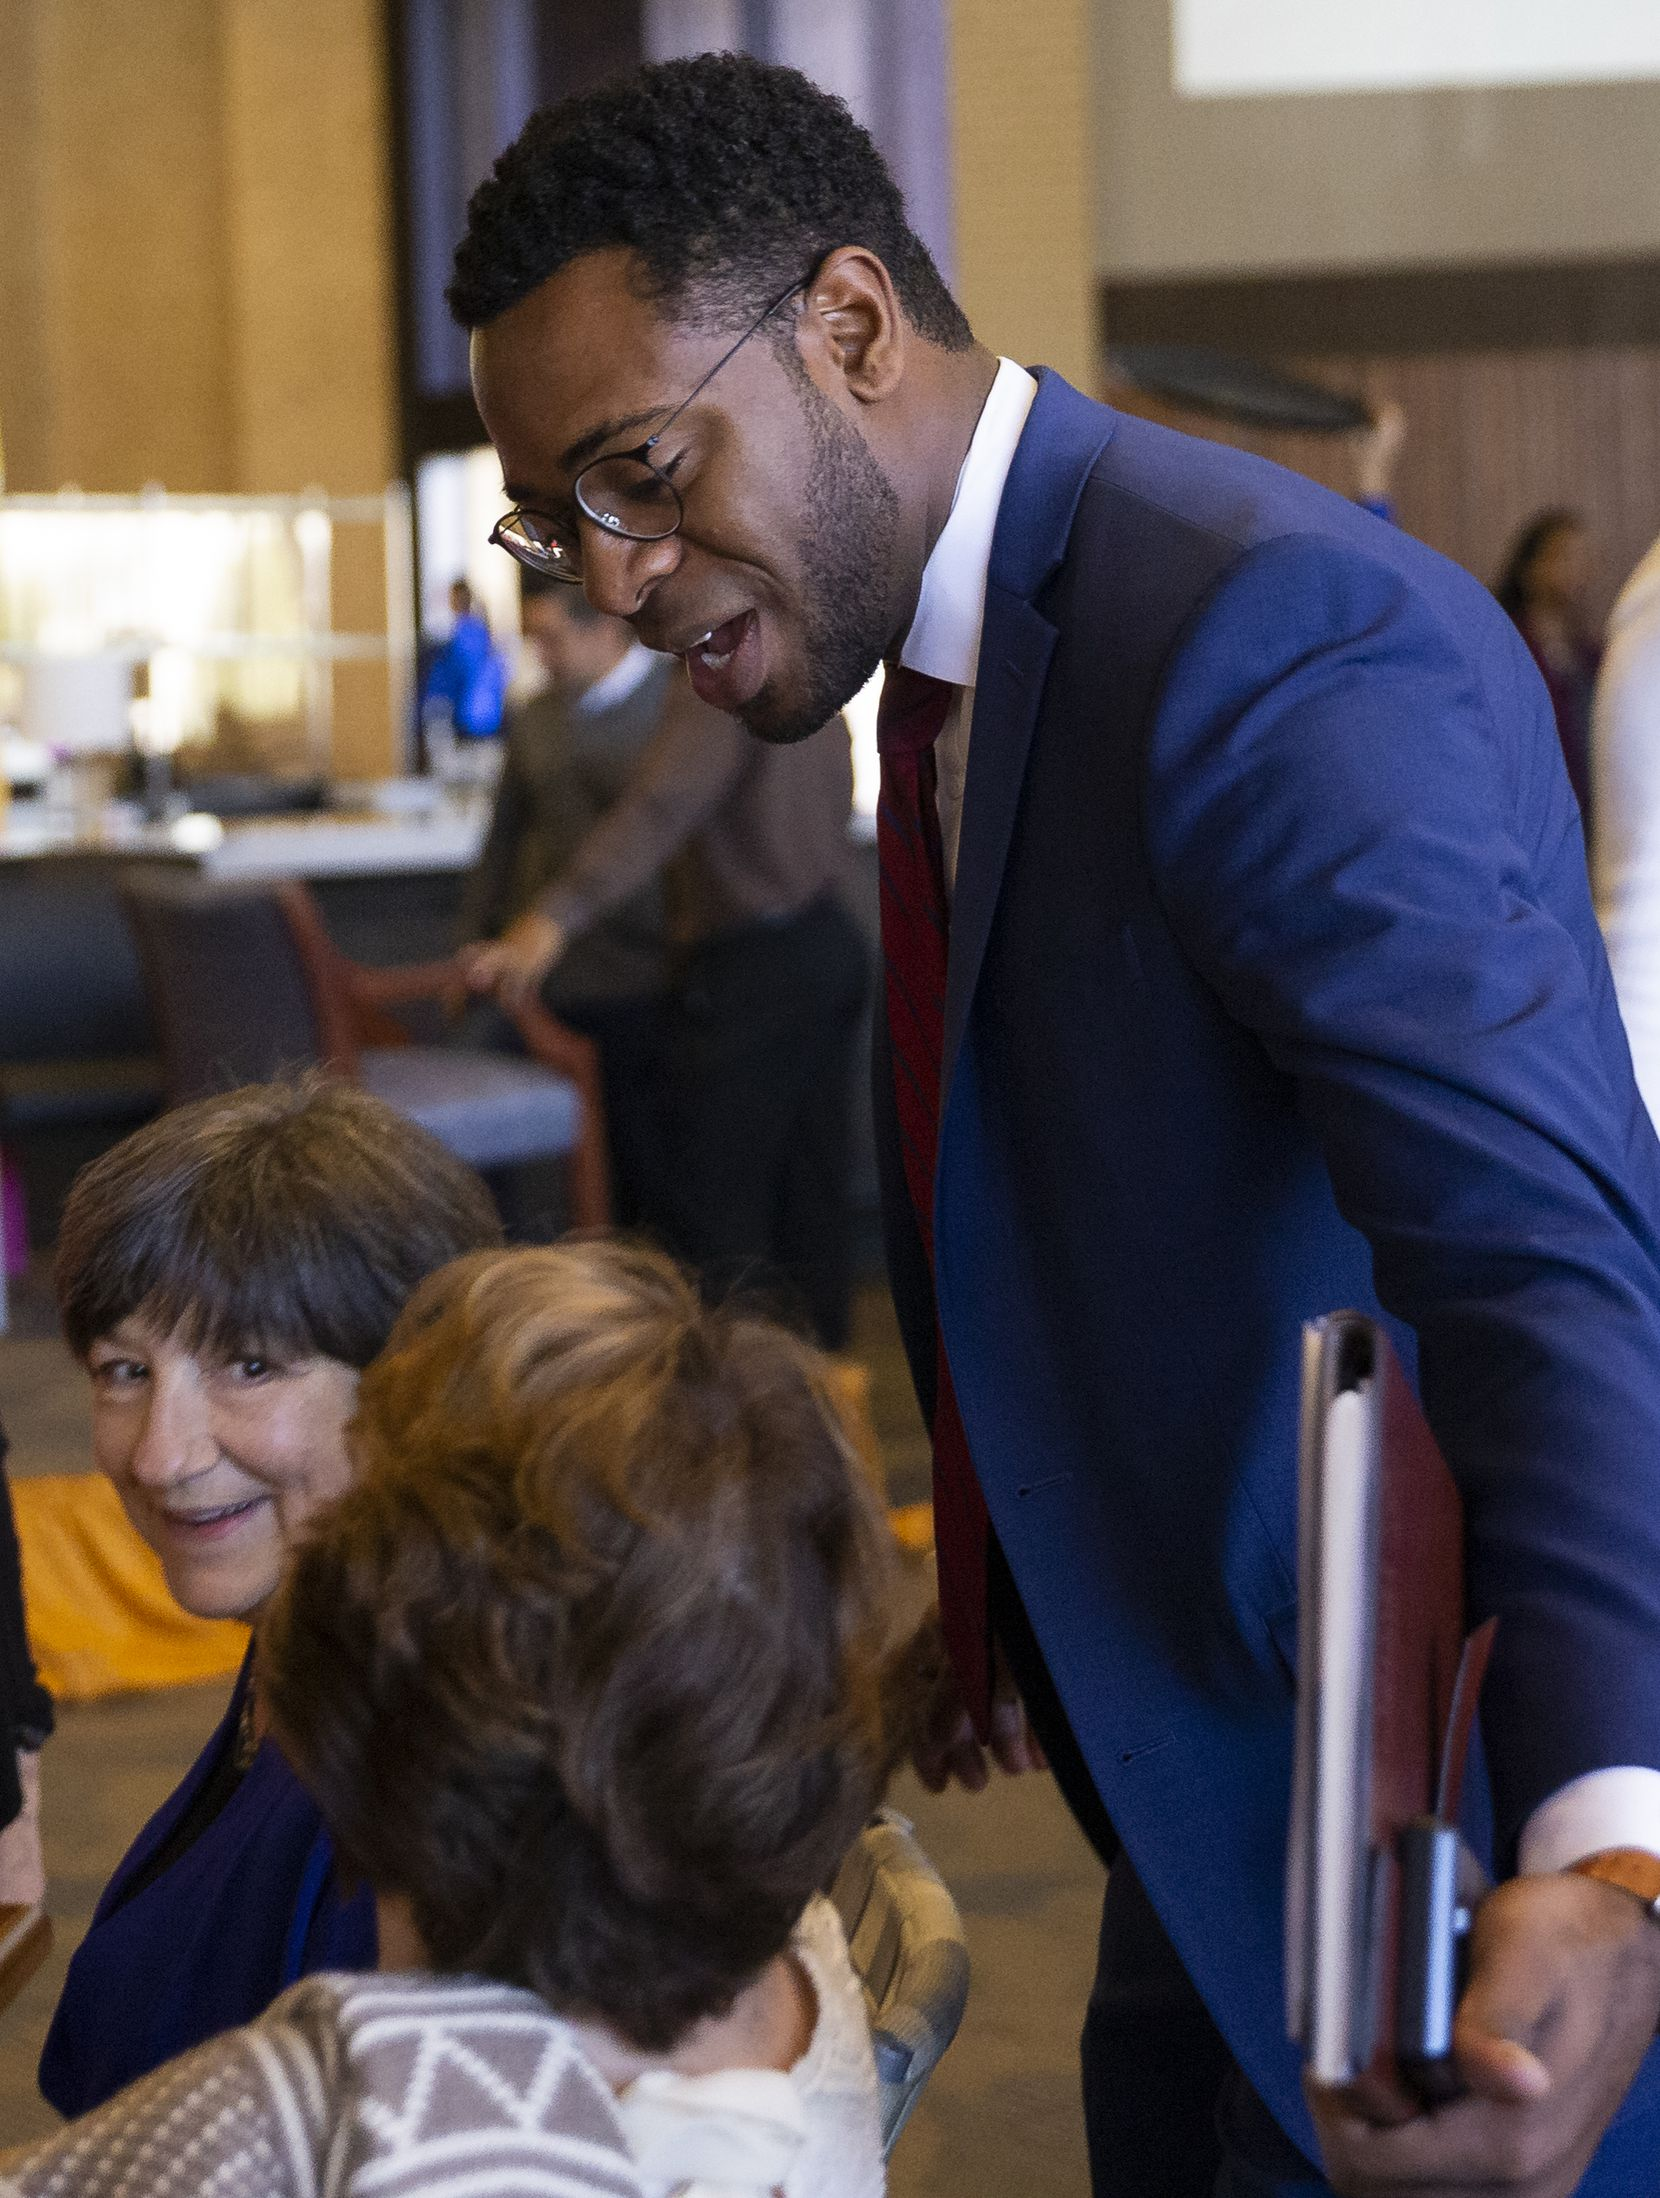 CEO of Big Thought Byron Sanders talks to people attending the Dallas City of Learning event on Dec. 2, 2019 in Dallas. During the event, Dallas City of Learning leaders shared the results of the 2019 summer program and awards. (Juan Figueroa/ The Dallas Morning News)